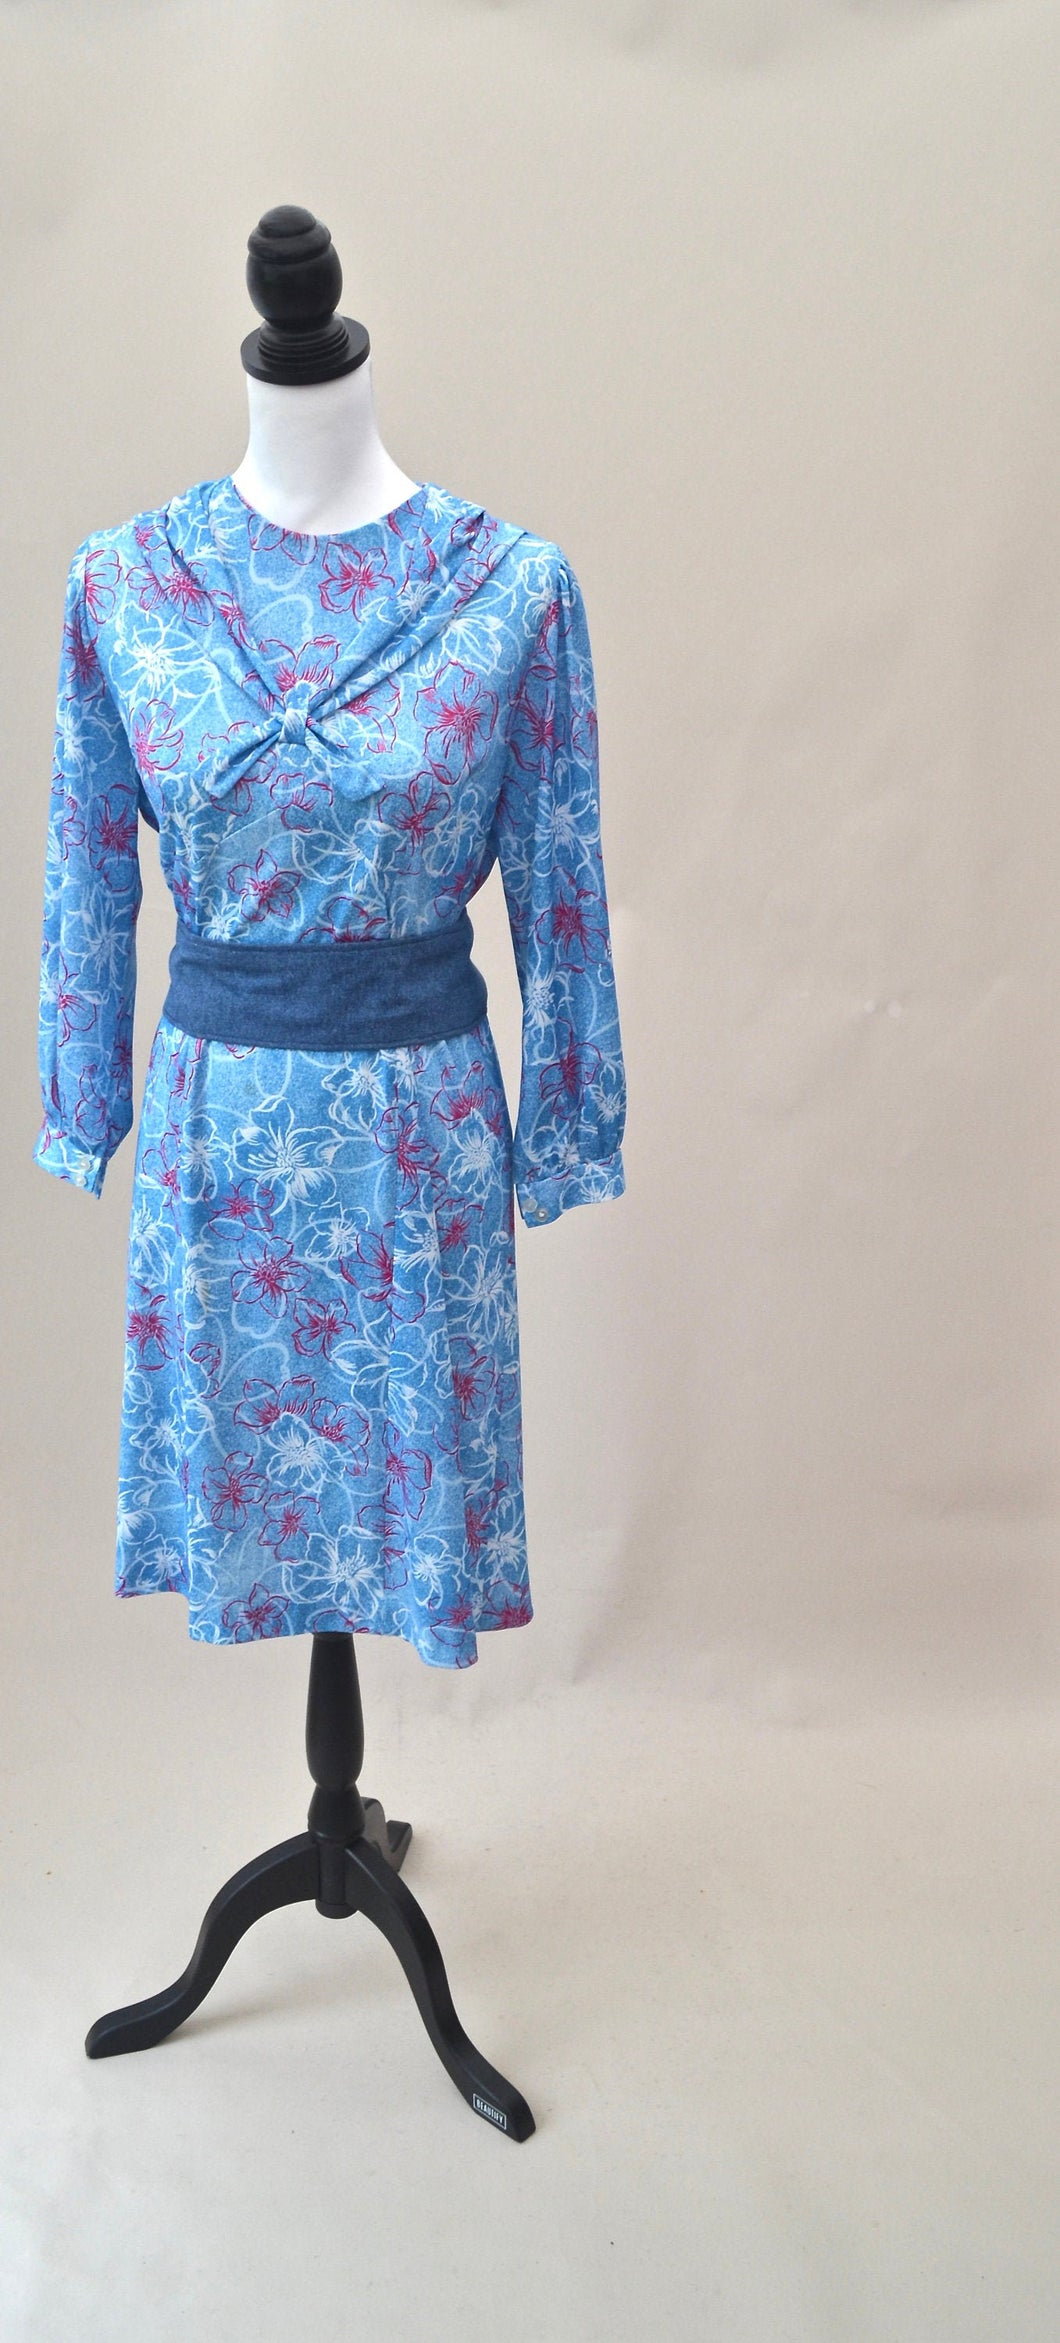 1970s Blue floral dress | Long sleeve dress with sailor boy collar | Est UK size 12